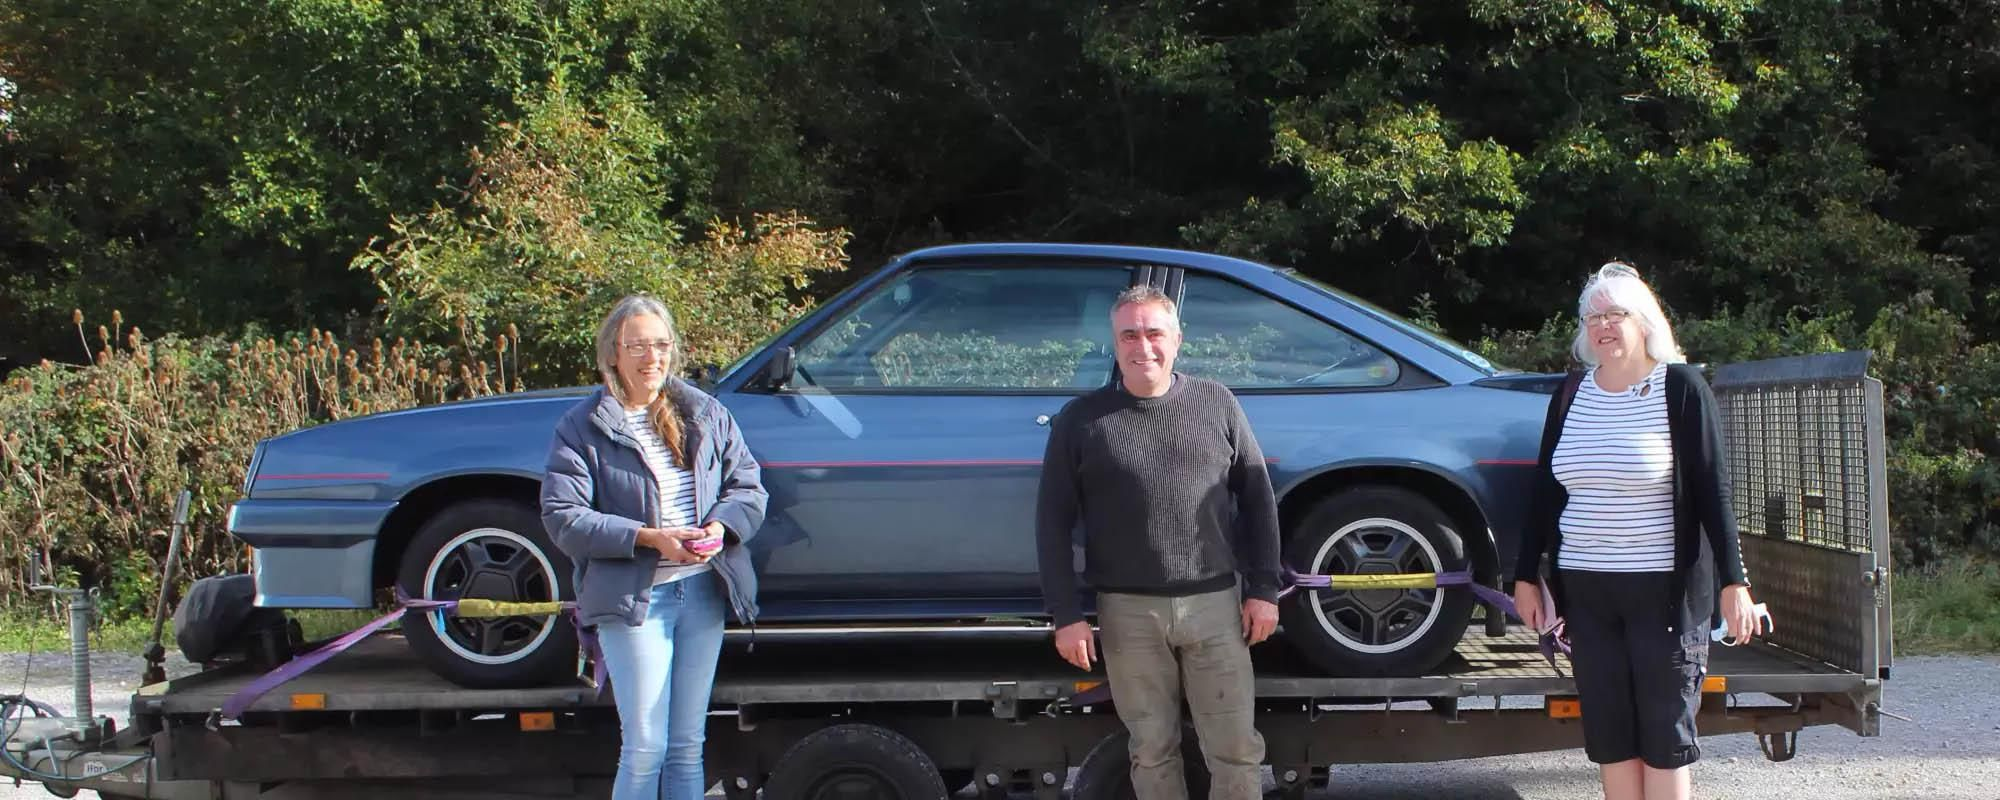 The original owners and the new owner of the Manta meet at the museum.